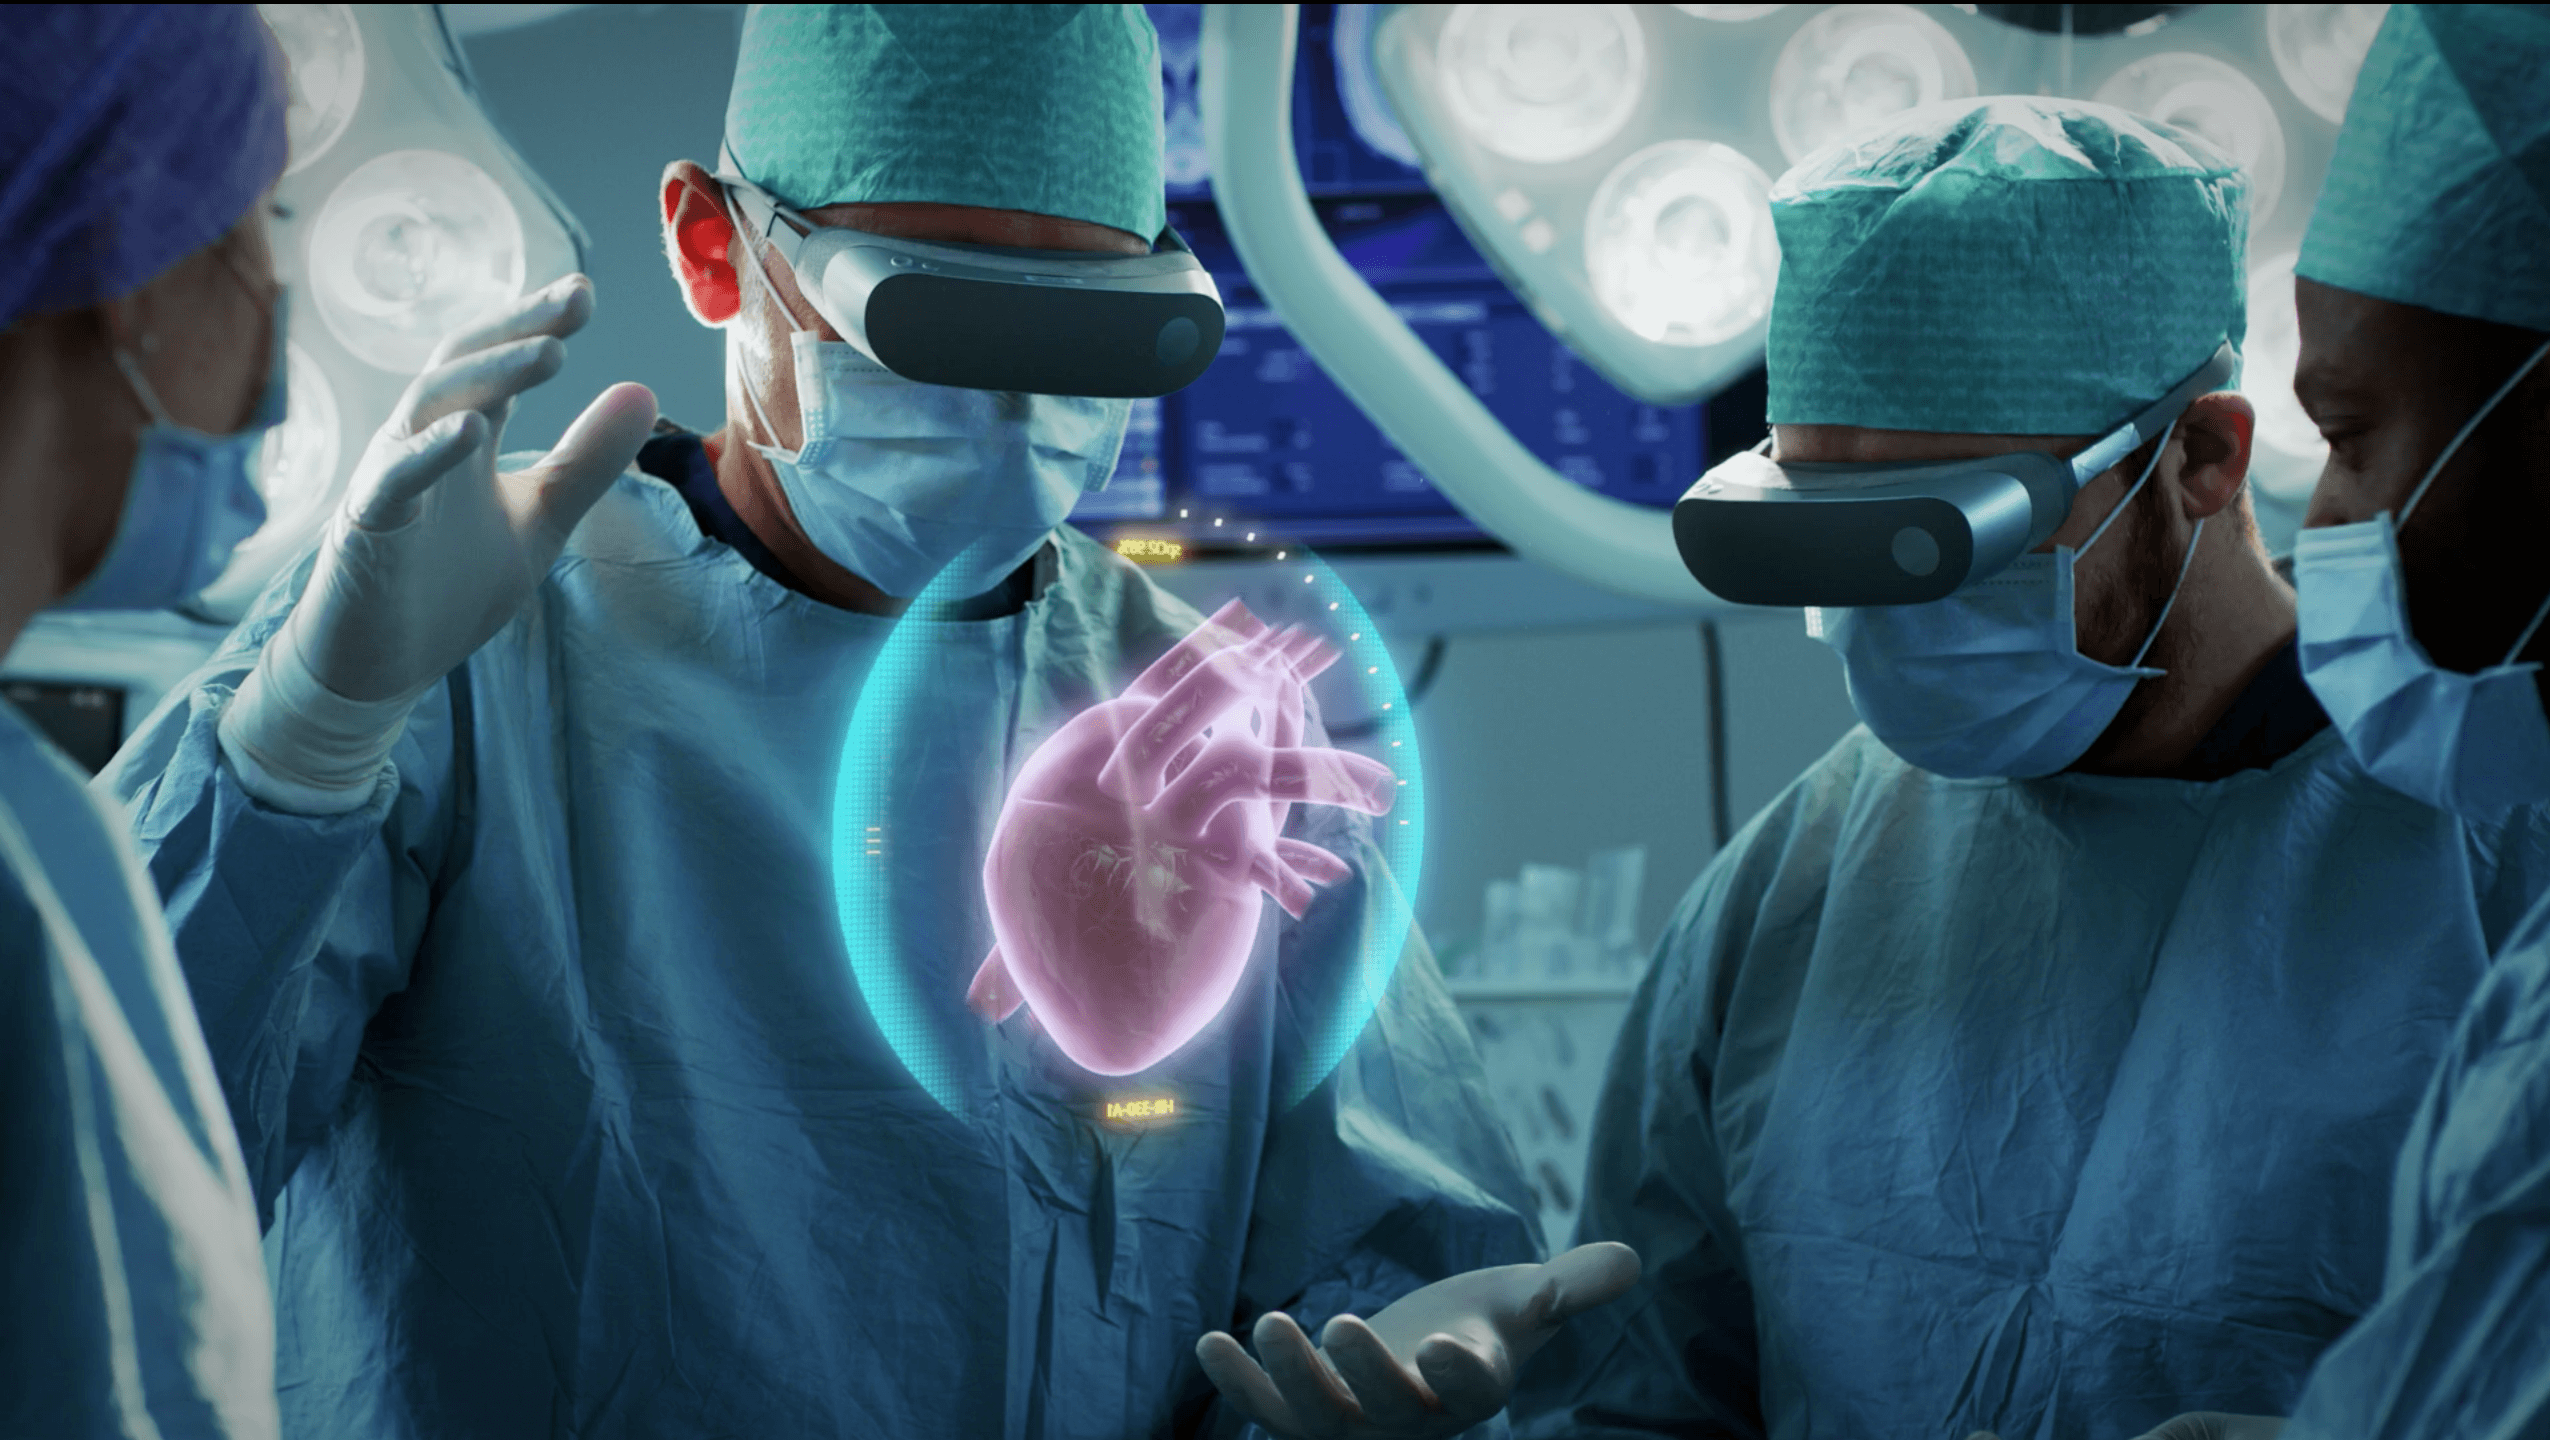 surgeon doctor augmented reality healthcare